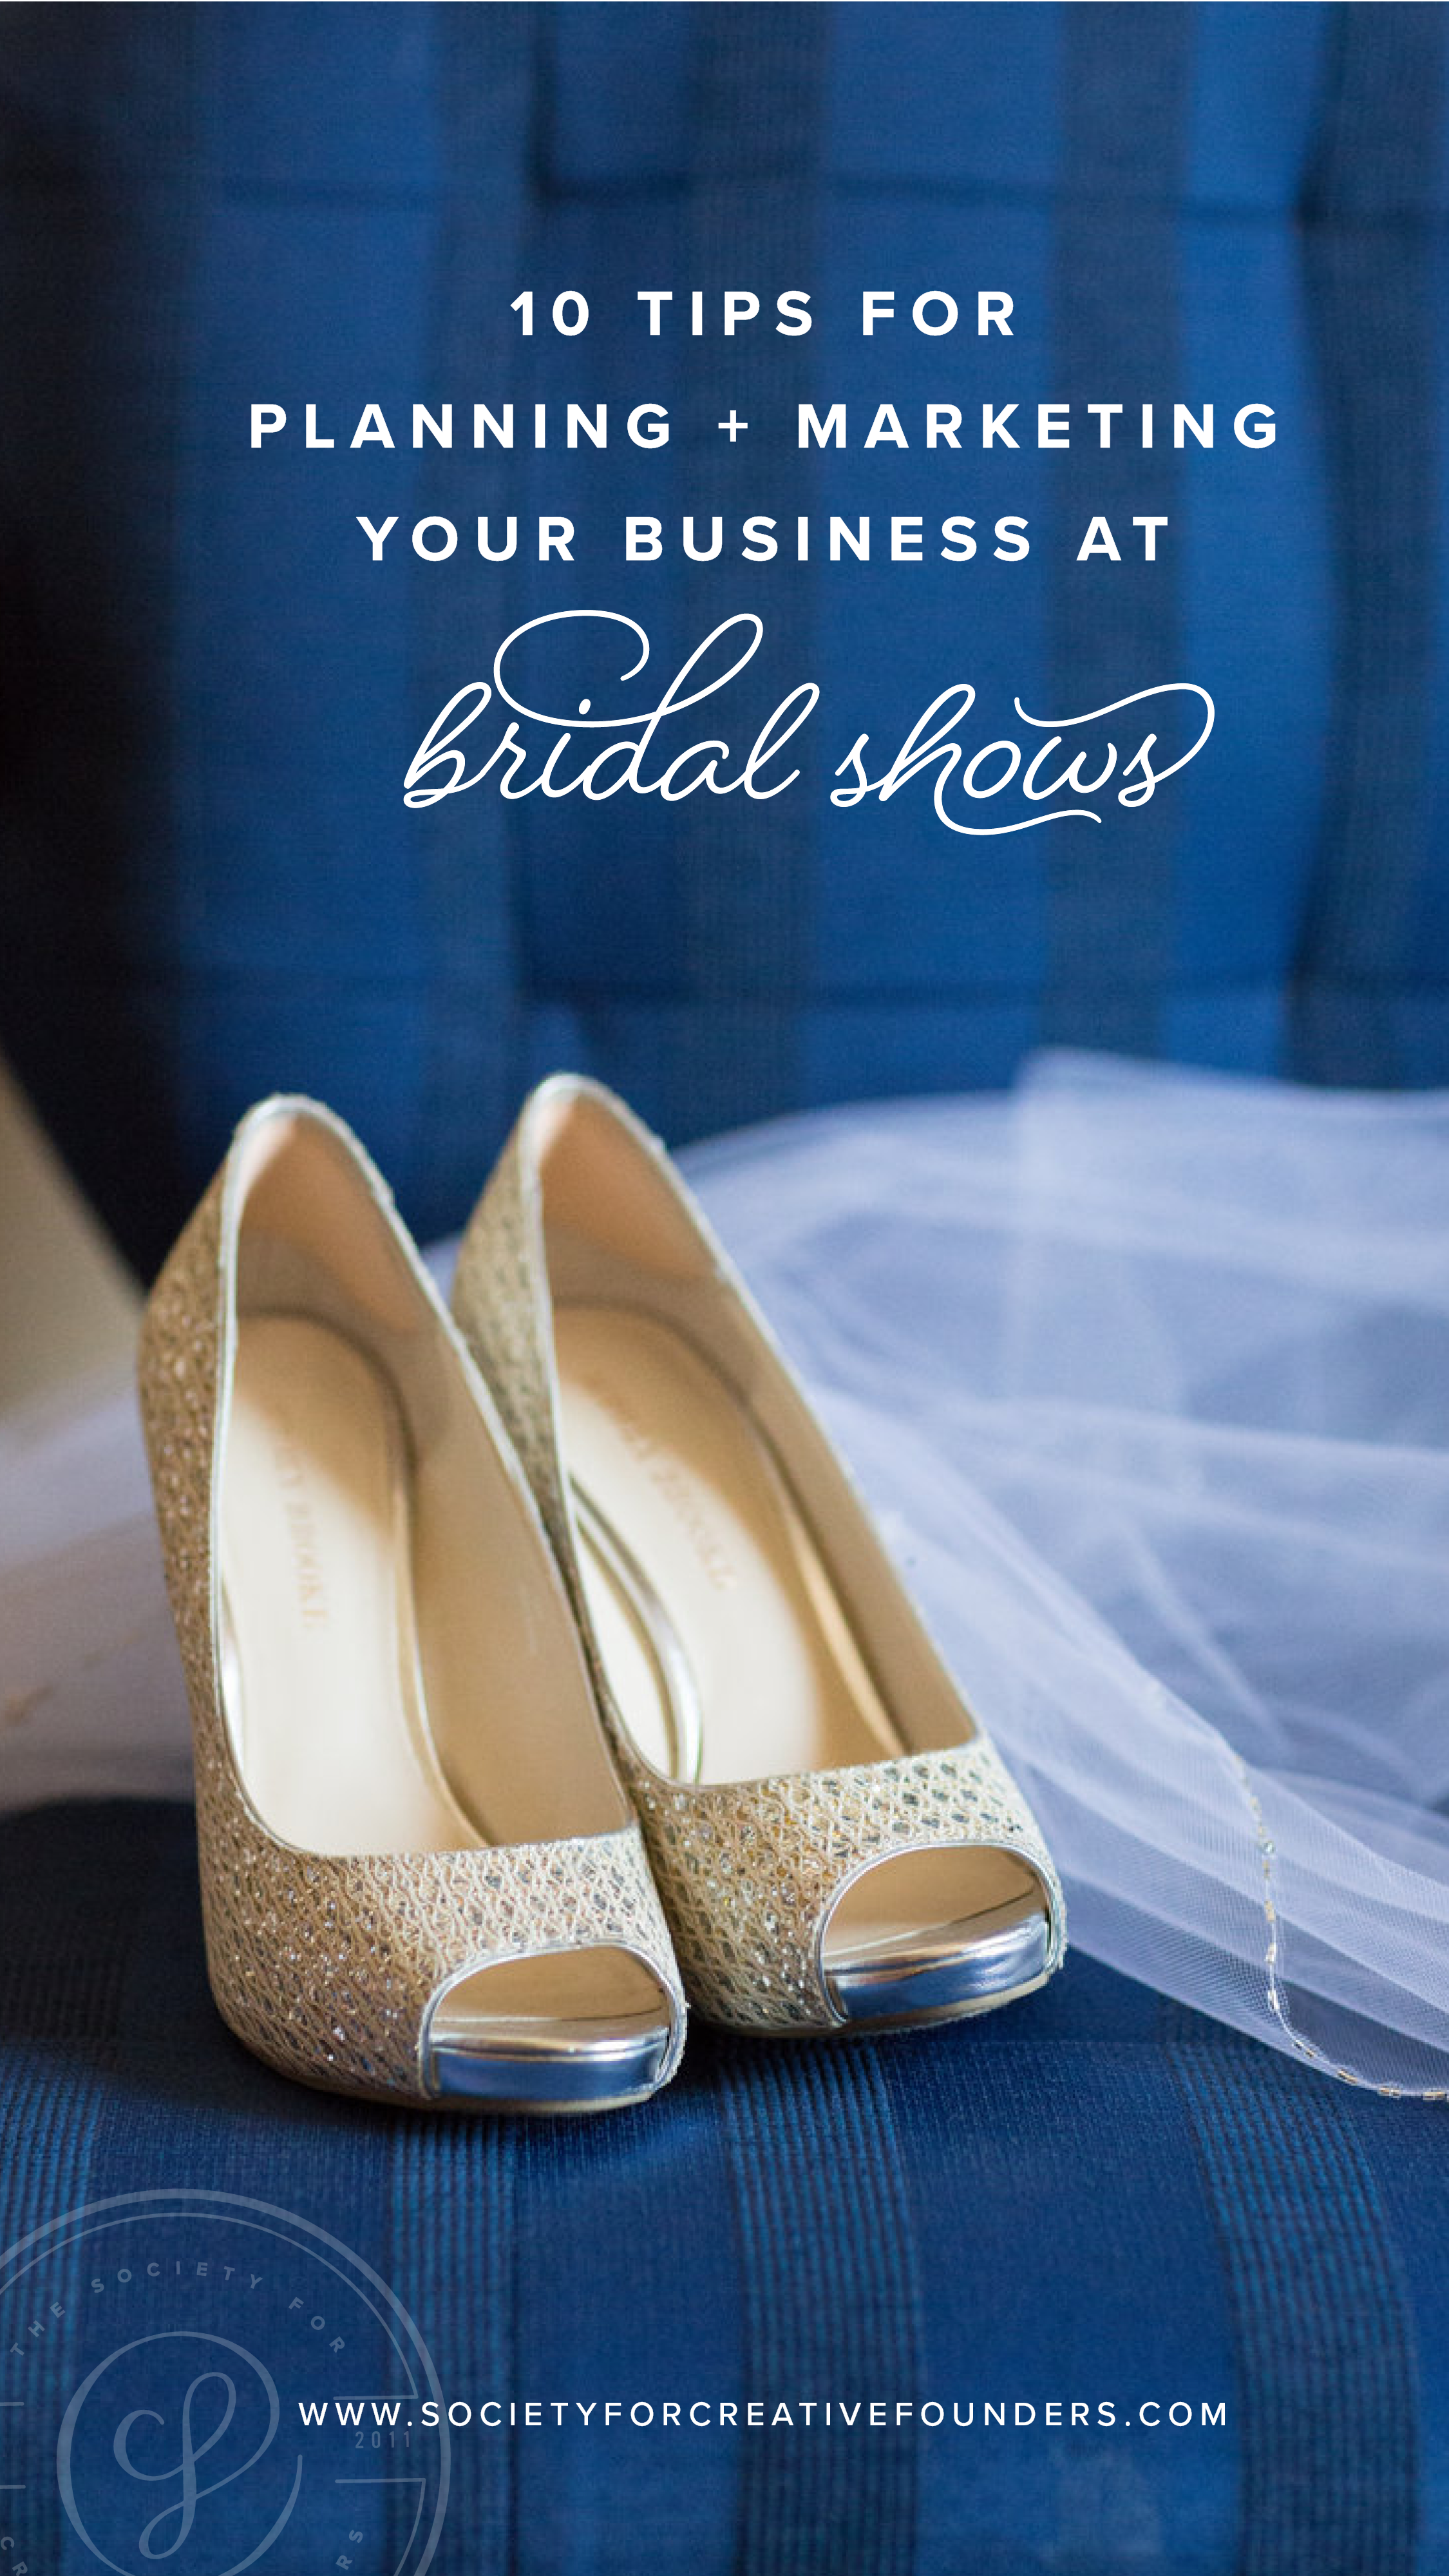 10 Tips for Marketing your Business at a Bridal Show - Society for Creative Founders